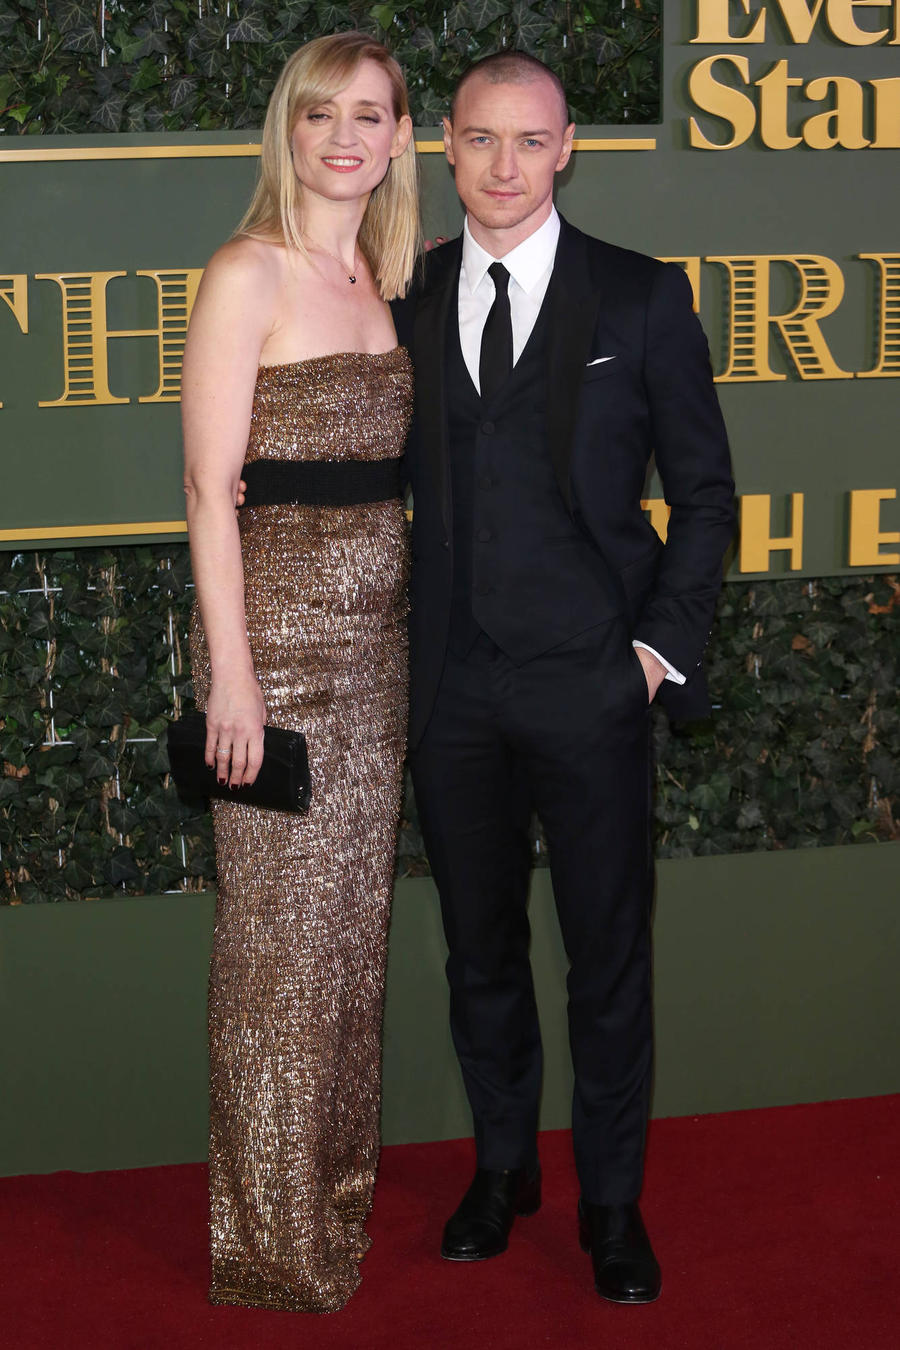 James Mcavoy 'Taking Inspiration From Gwyneth And Chris Split'